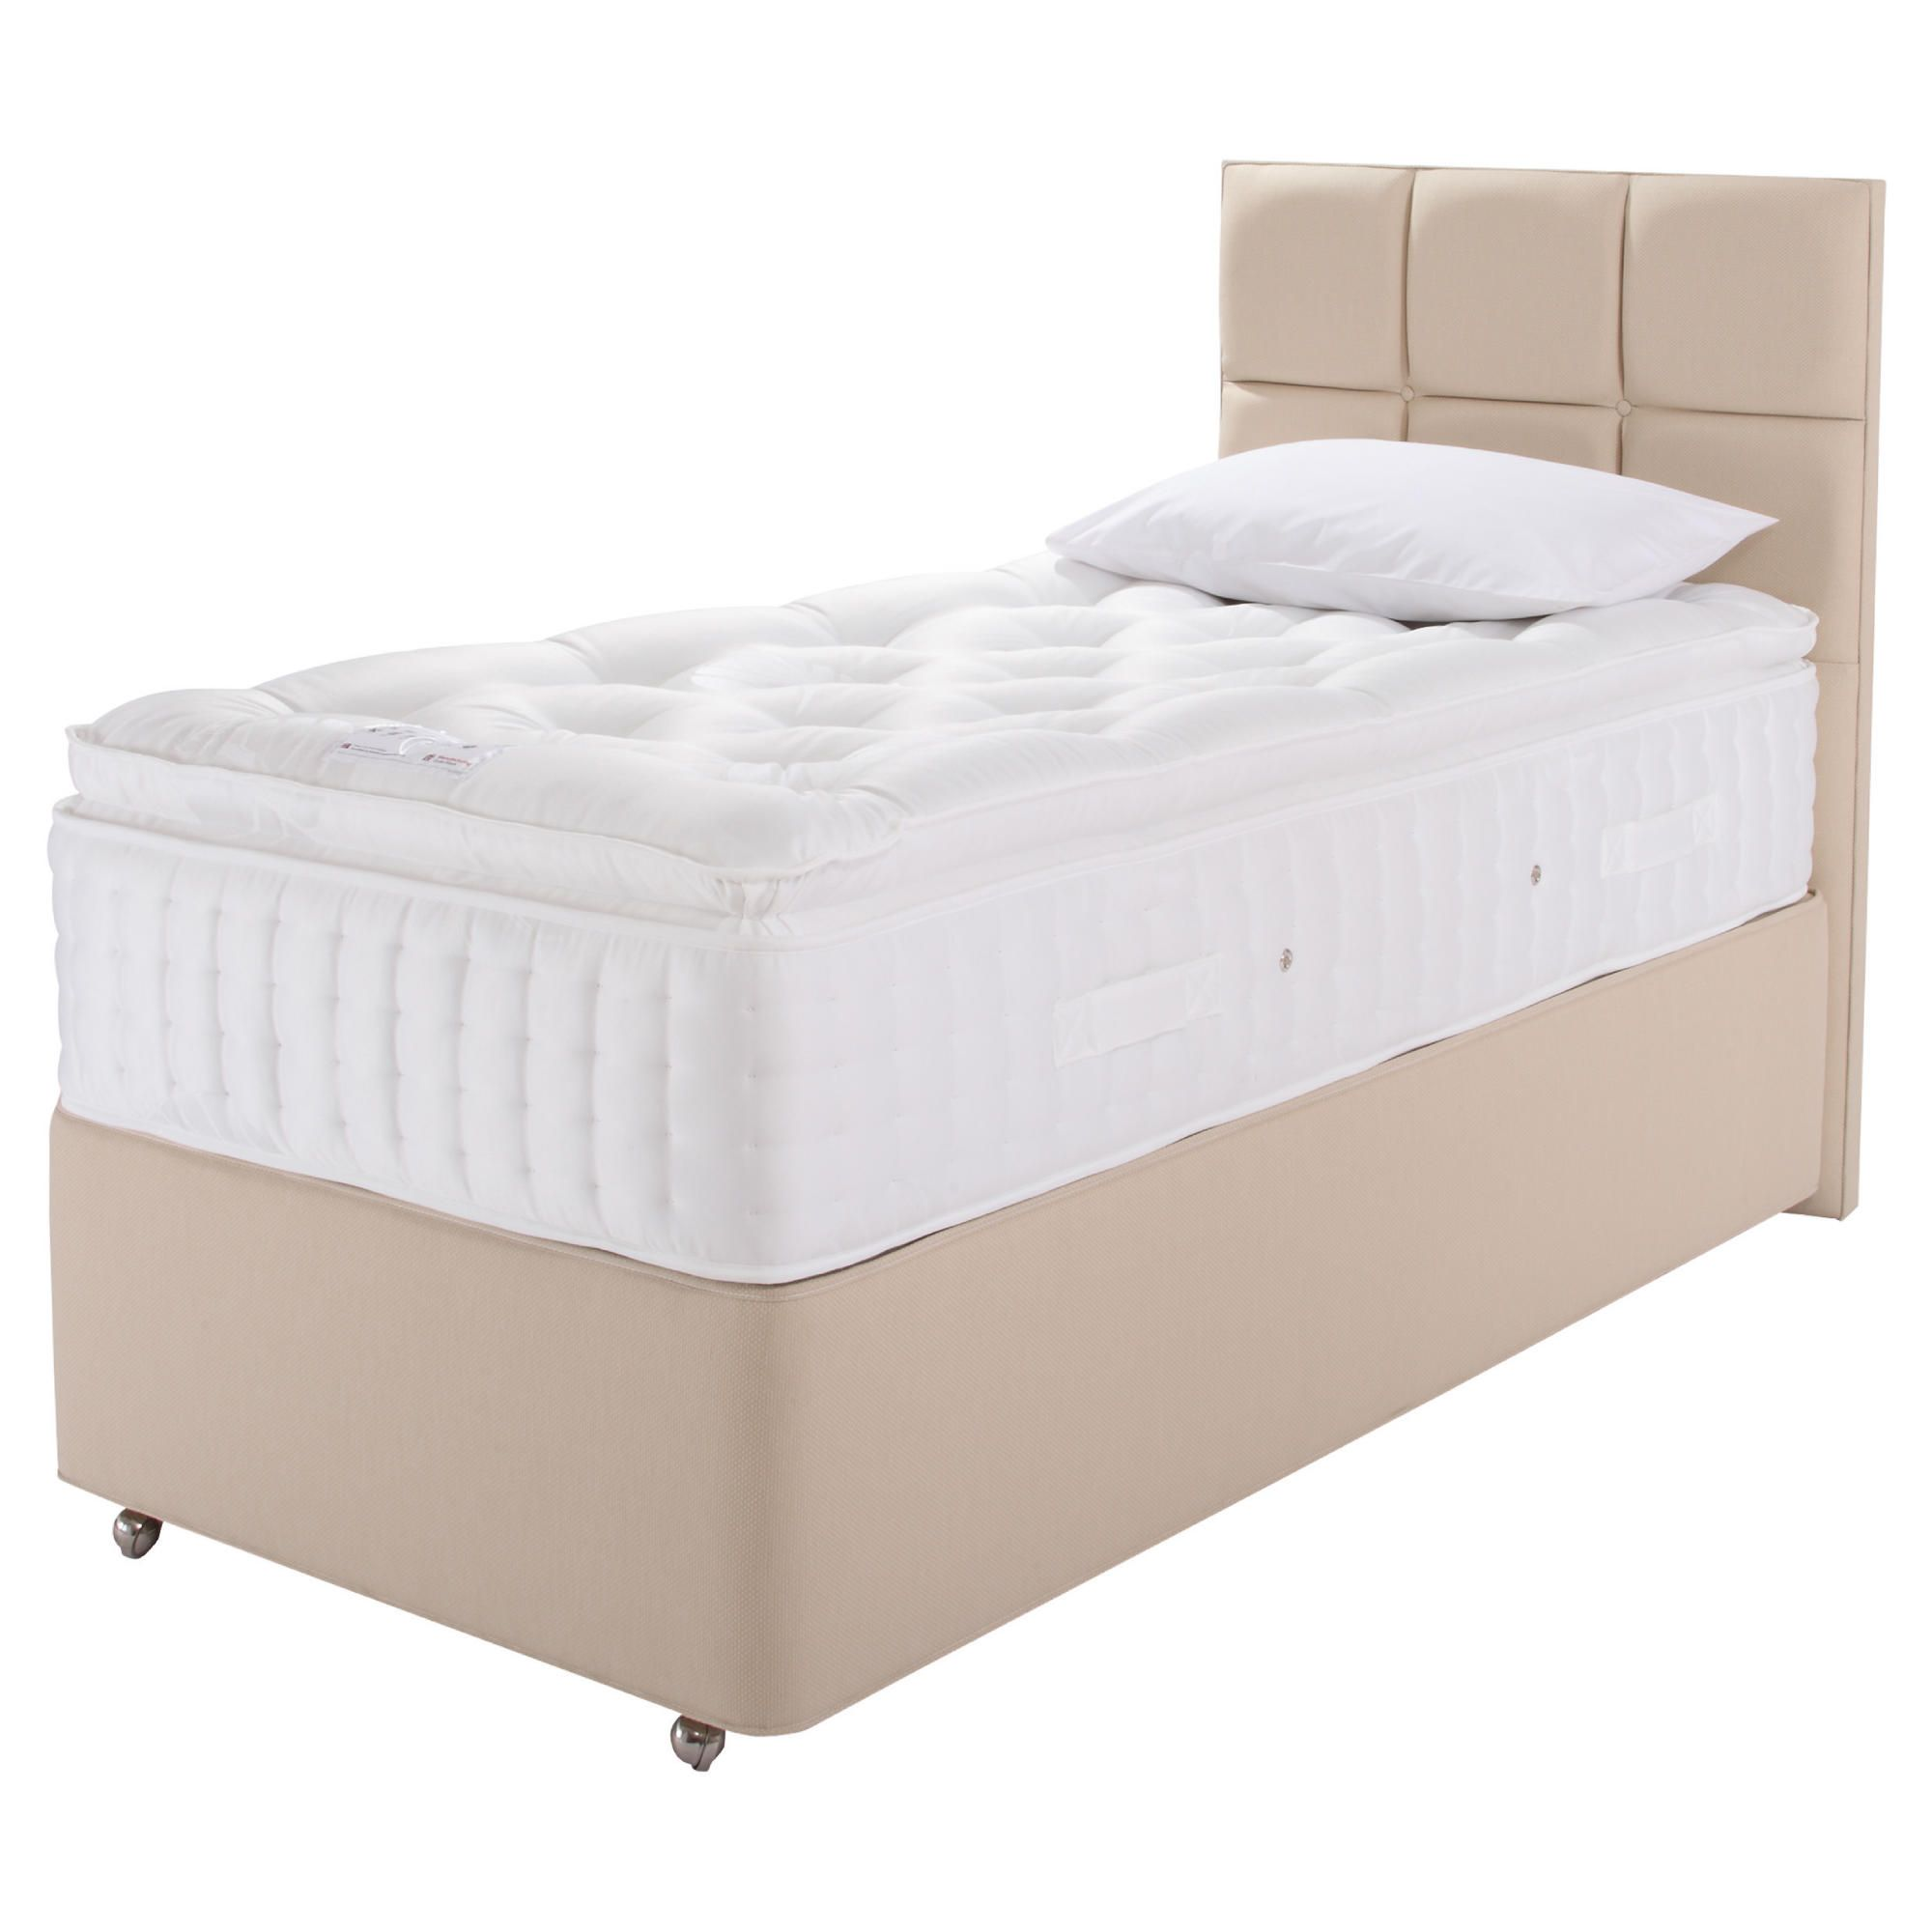 Relyon Luxury 2200 Non Storage Divan Bed Single at Tesco Direct